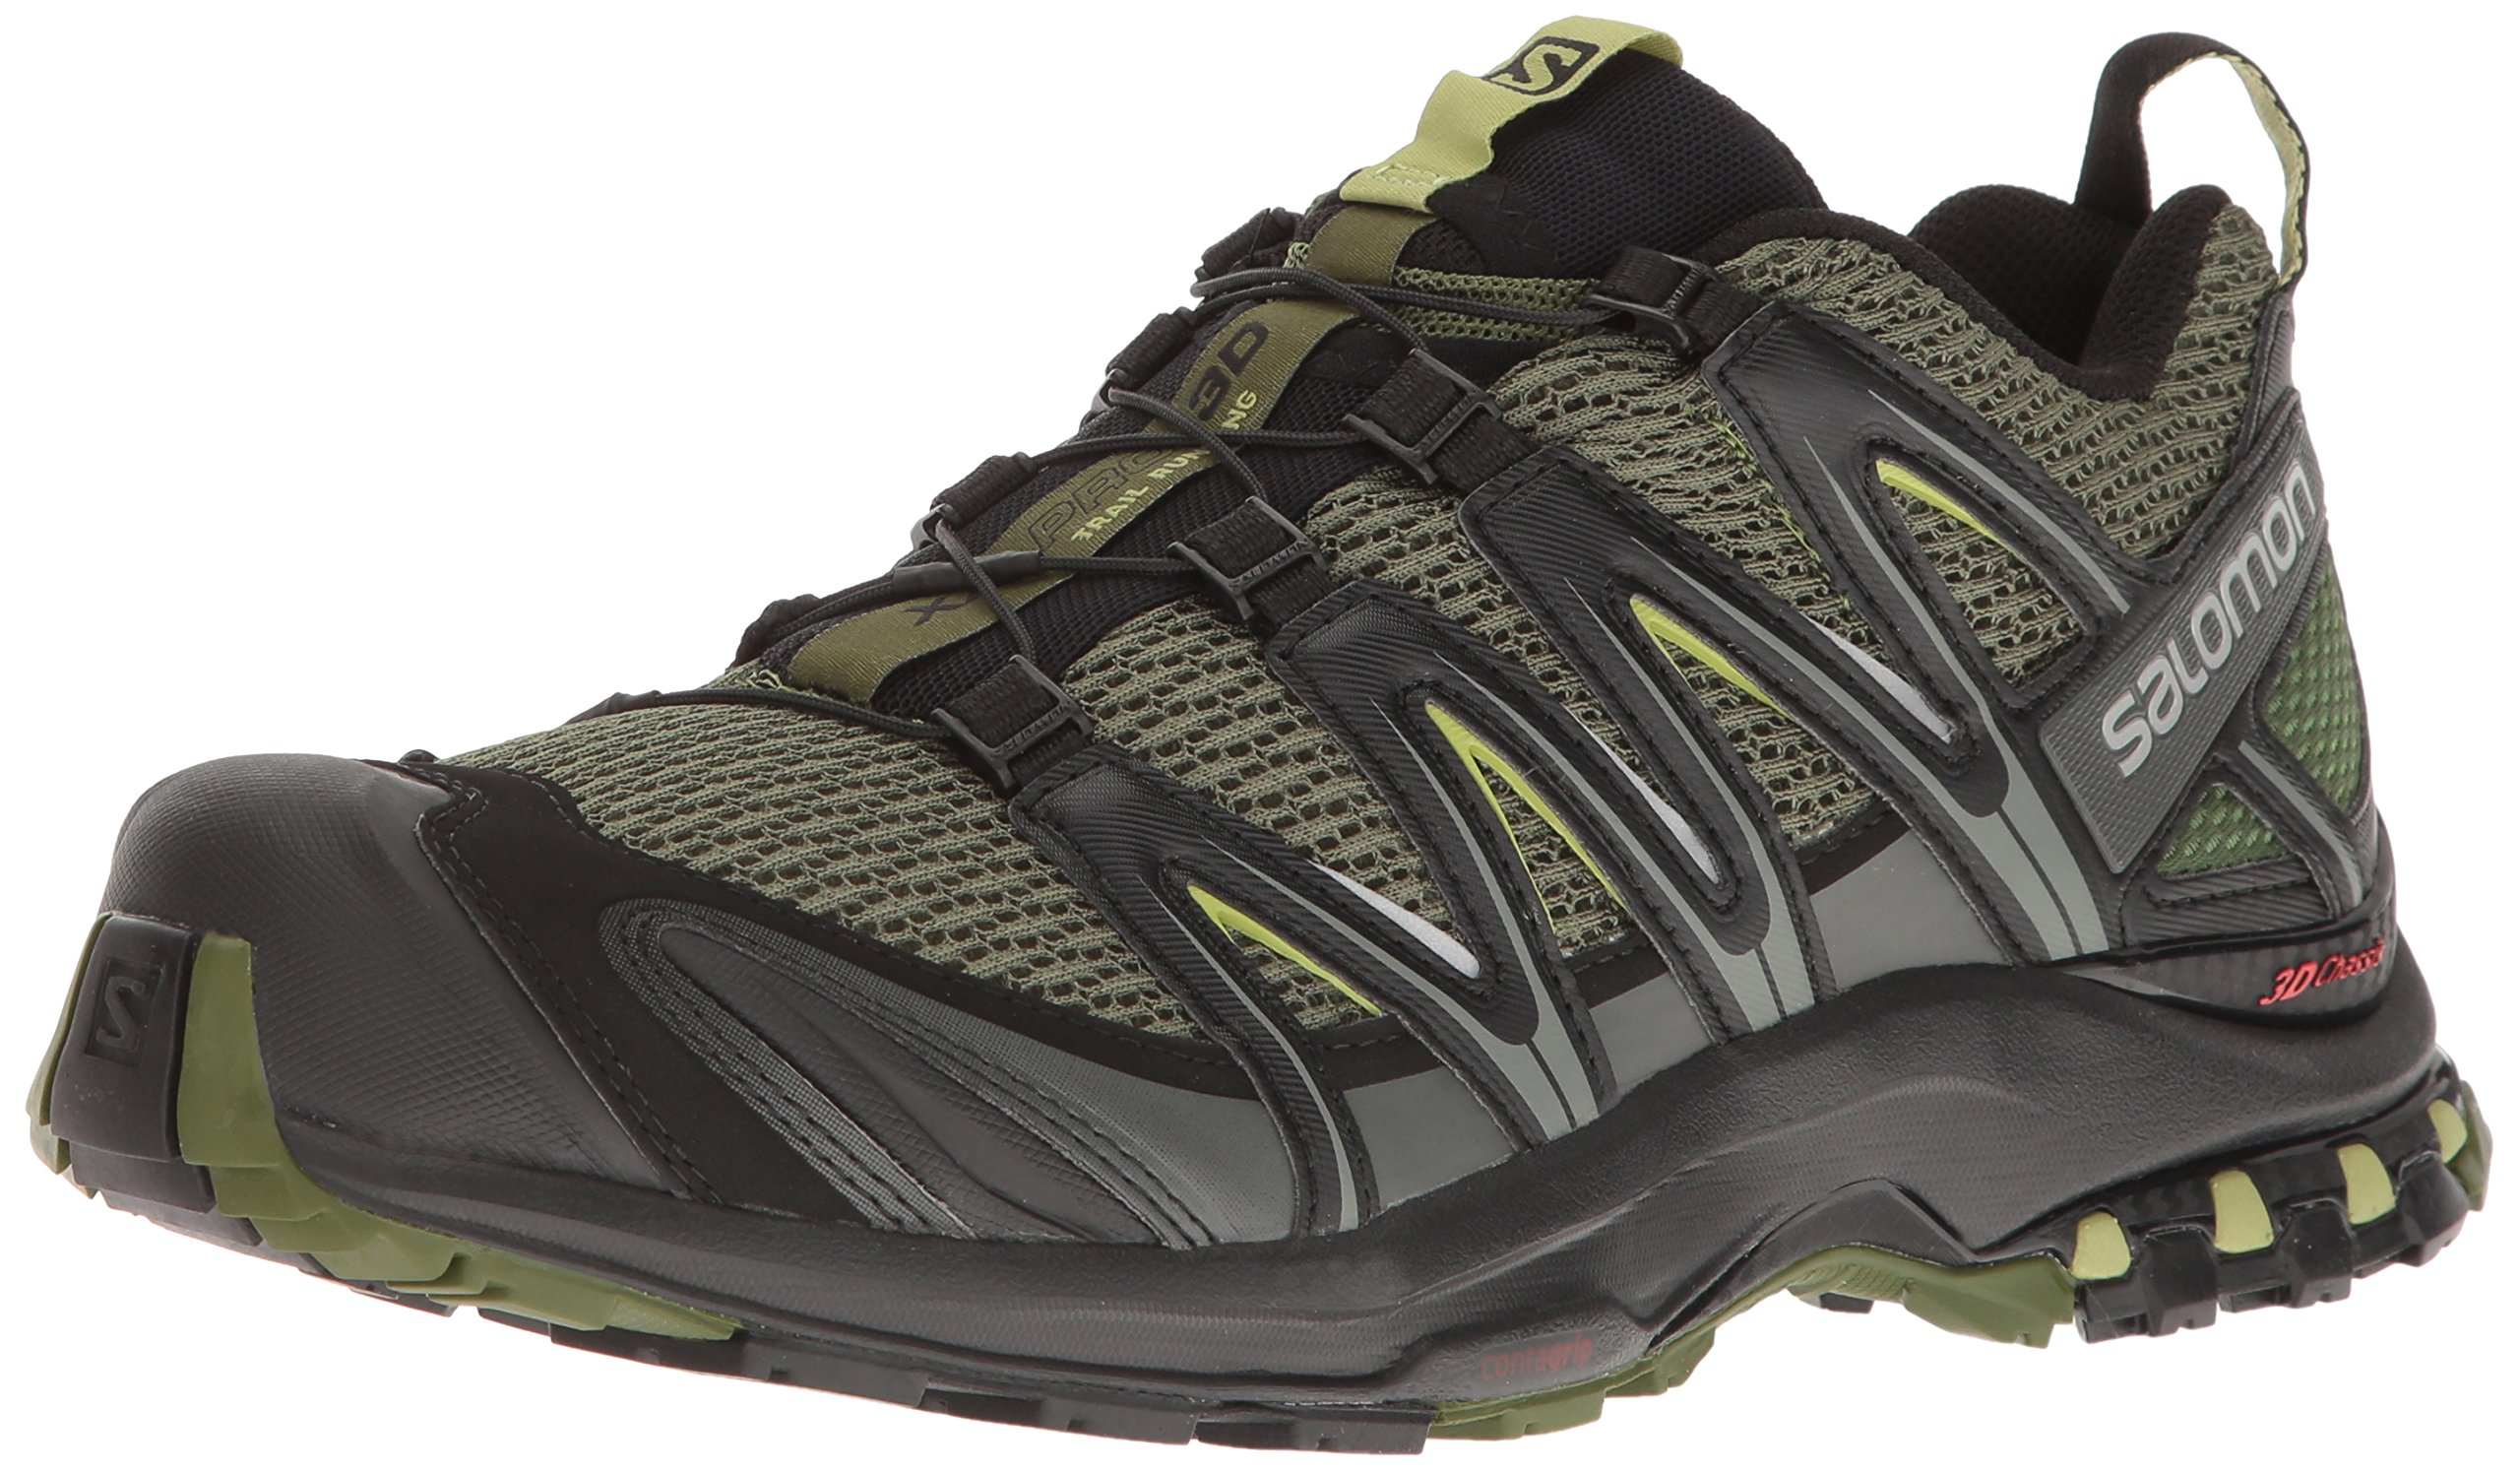 Salomon Men's XA PRO 3D Trail Runner, Chive, 11 M US by SALOMON